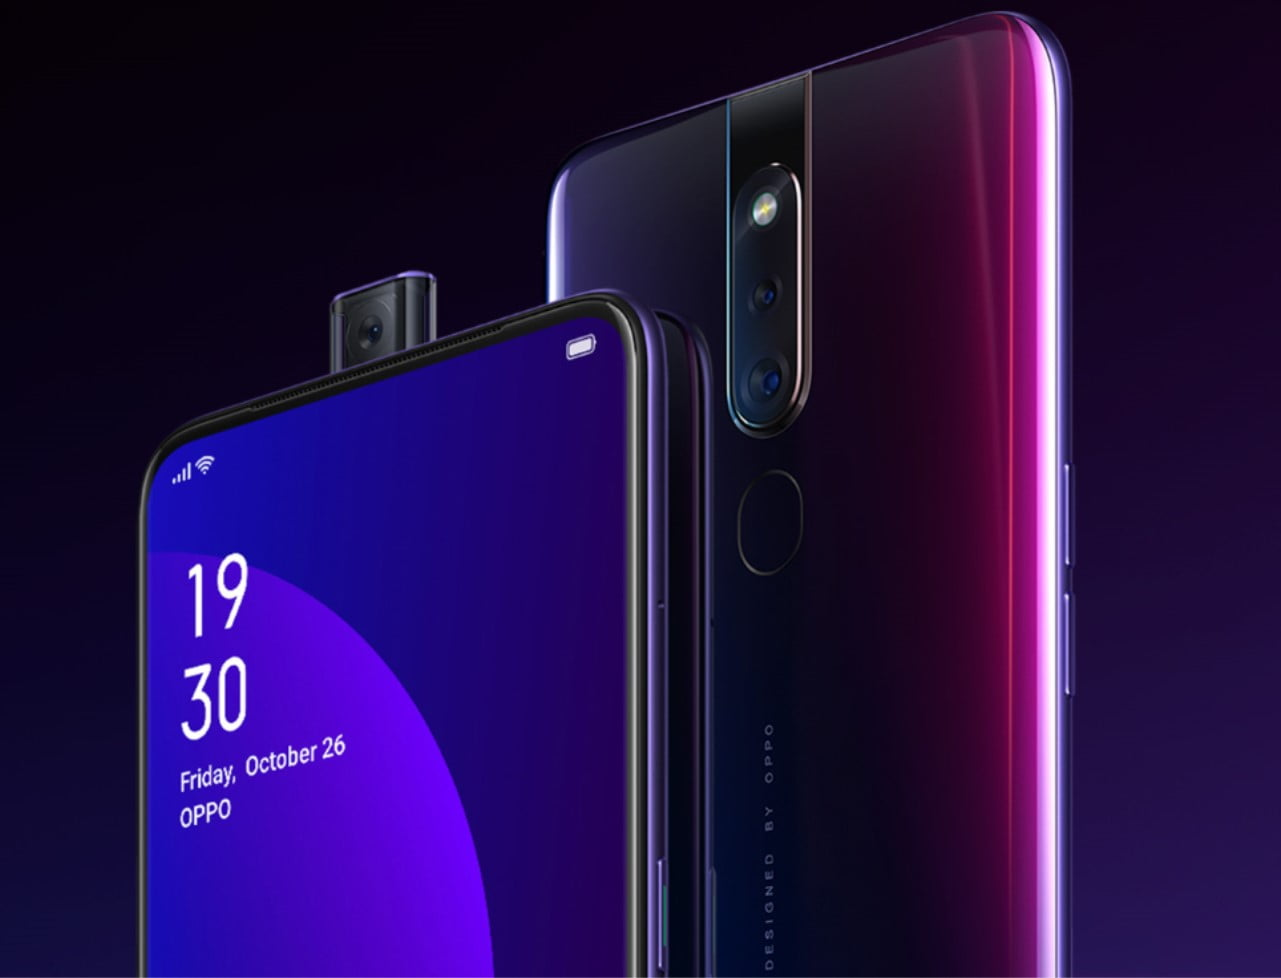 OPPO F11 Pro - Features